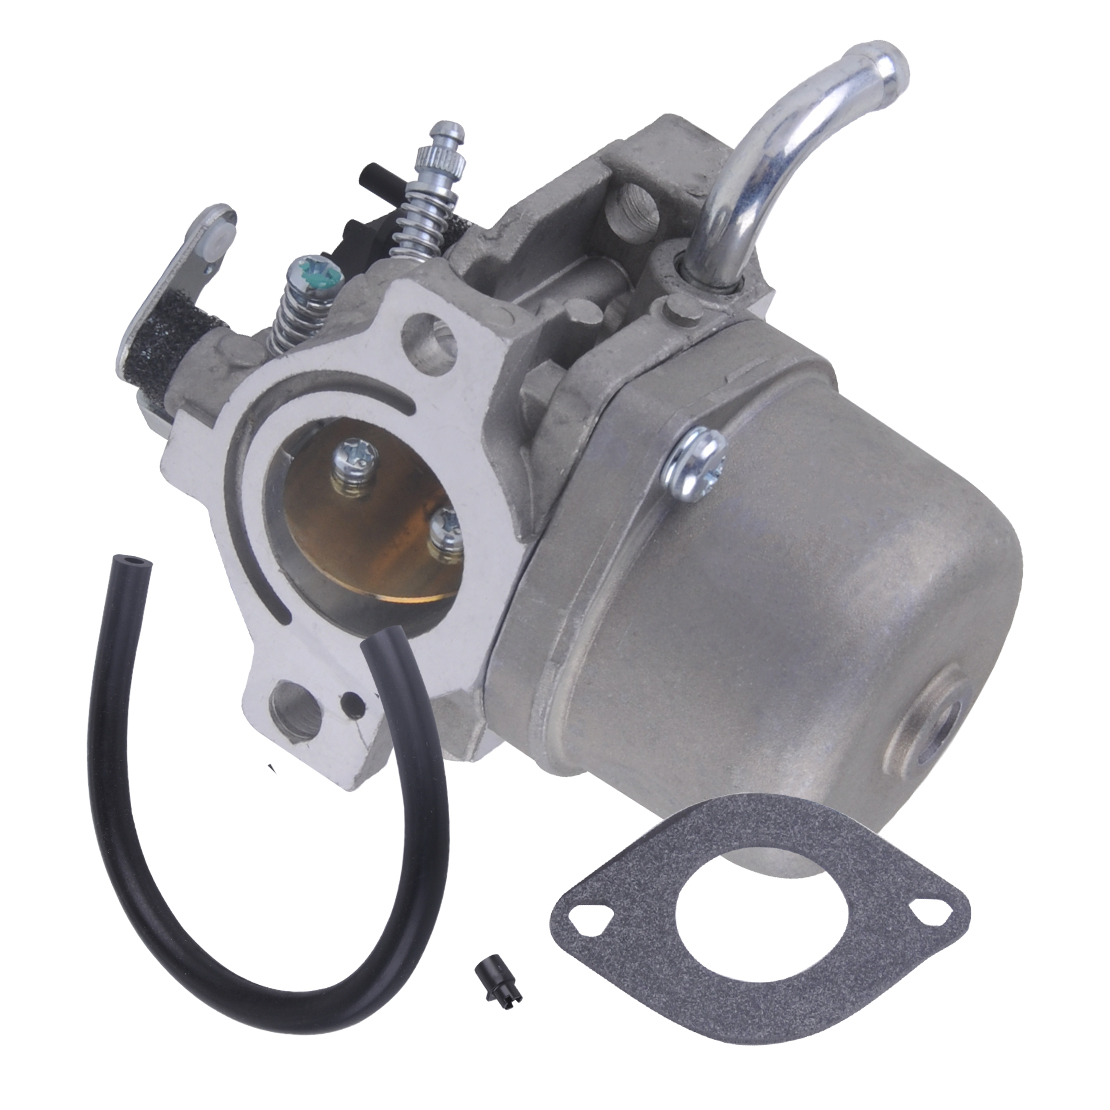 LETAOSK Carburetor With Fuel Line And Gasket Fit For Briggs Stratton 590399 796077